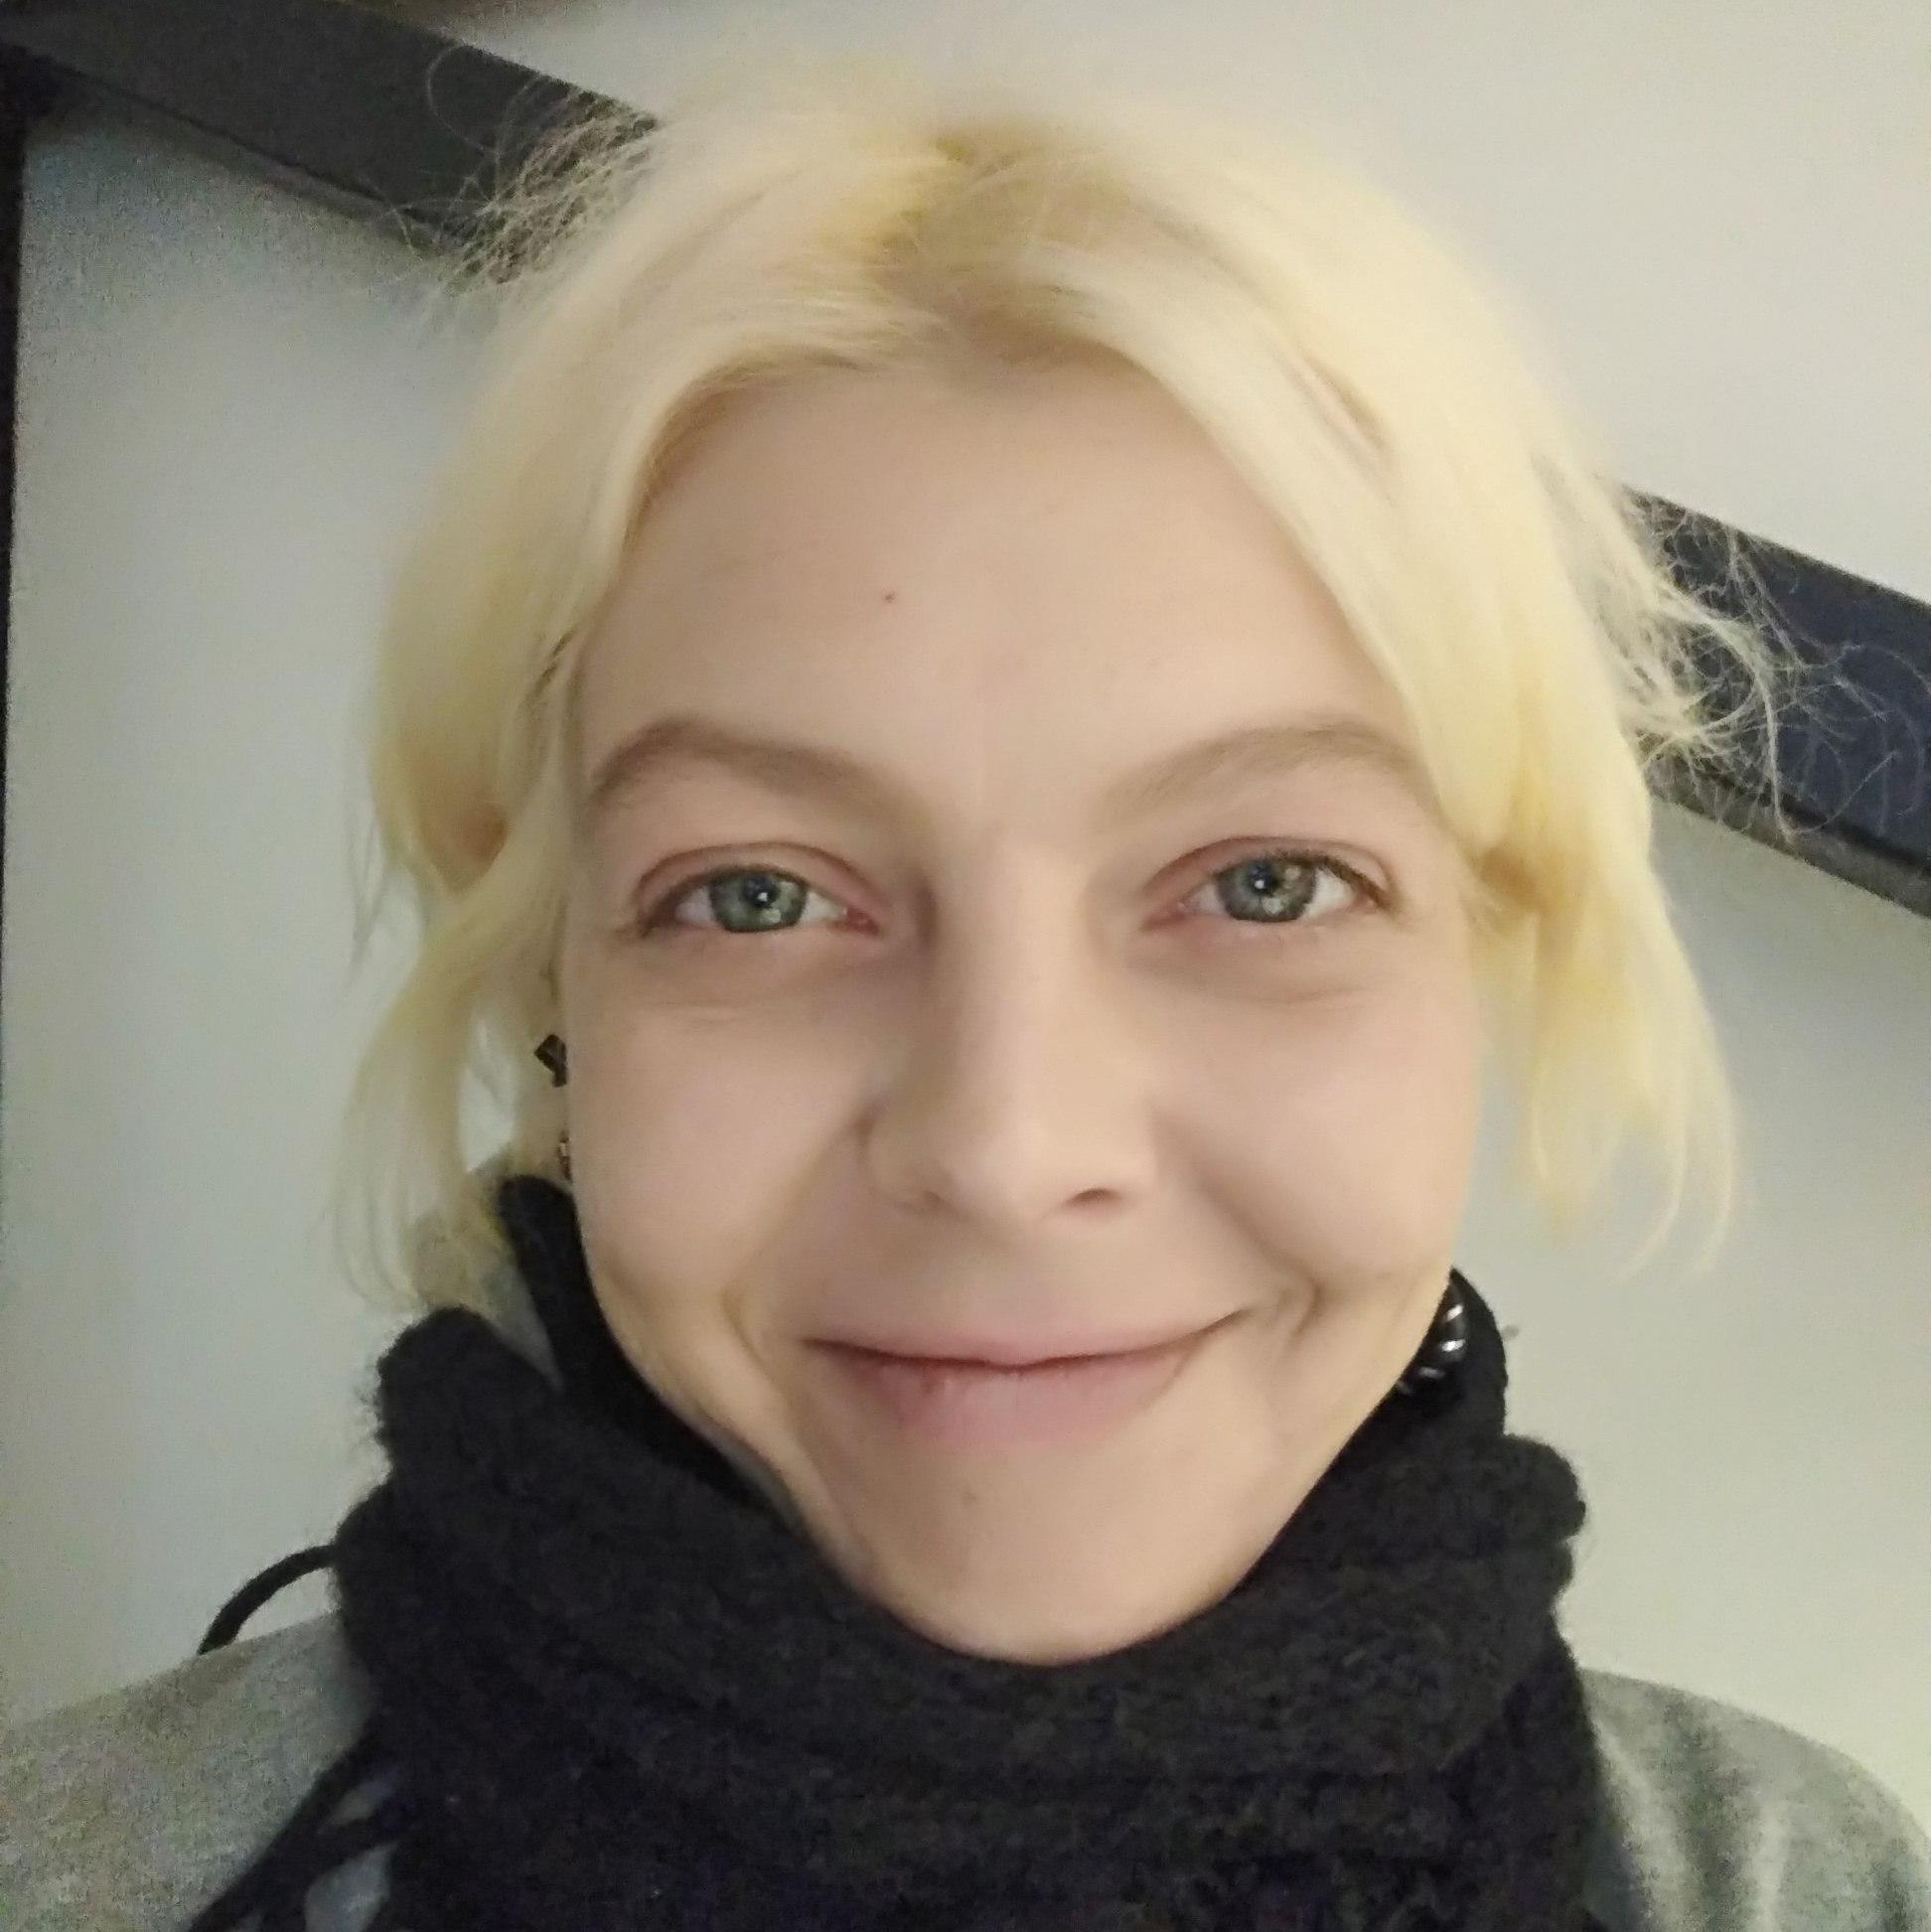 A portrait of Egle Nedzinskaite in colour. She has blonde straight hair. She is wearing a black scarf and is looking into the camera.